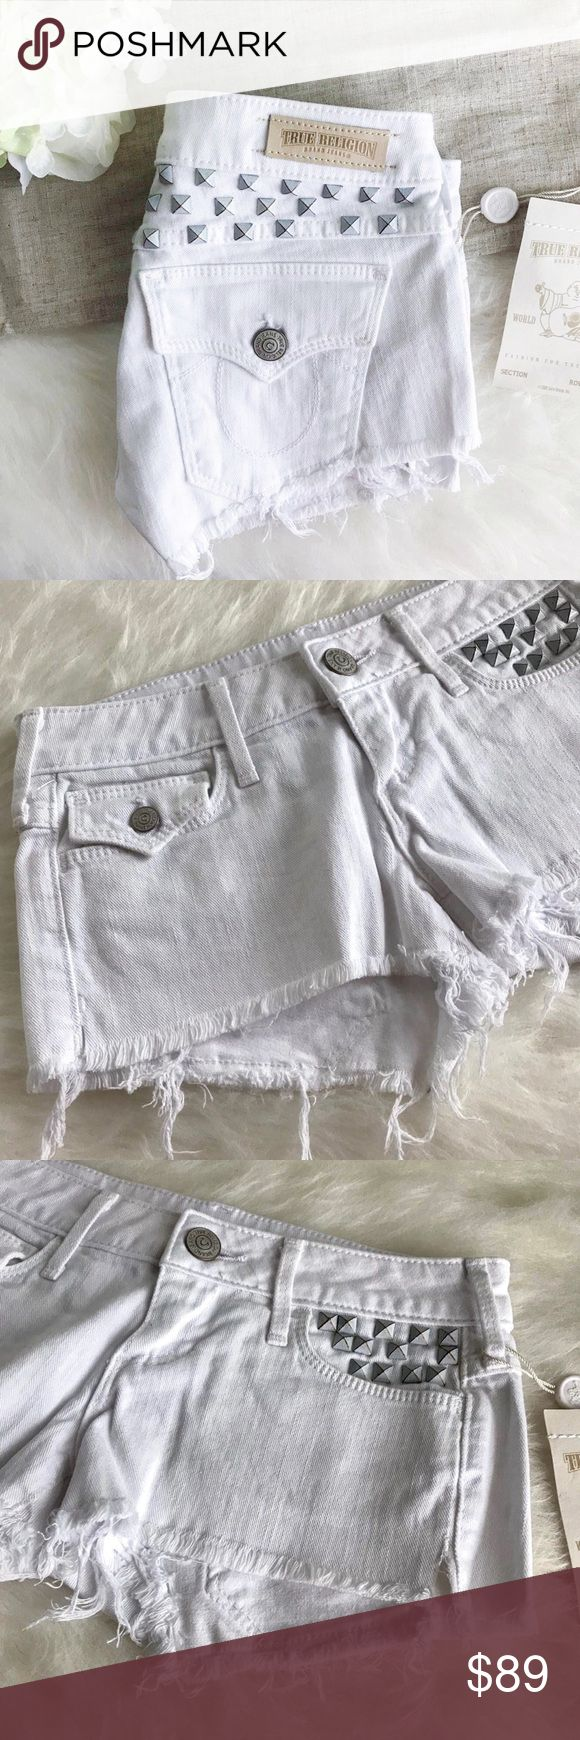 """true religion • embellished cutoff shorts True Religion studded white jean shorts  Super shortie shorts from True Religion. Frayed leg openings with slits on each leg. Stud embellishments on front pocket and across the top of the back. Small flap button pocket on right front. Color is optic white. It's not bright white. Color truest in last photo. Super cute!  size: 24 measurements:         •waist straight across: 13""""        •inseam: 2""""        •rise: 6"""" condition: new with tag True Religion…"""